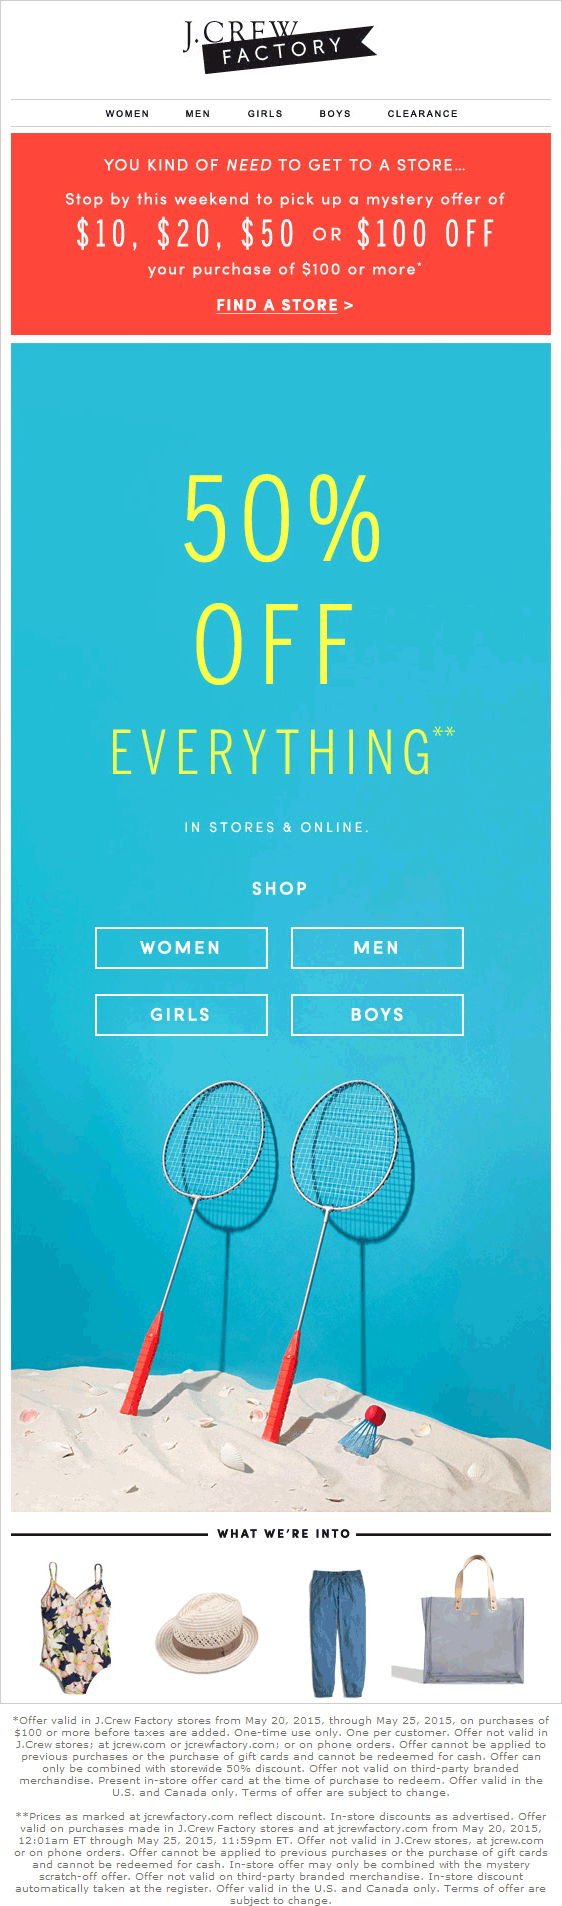 J.Crew Factory Coupon April 2019 50% off everything & more at J.Crew Factory, ditto online